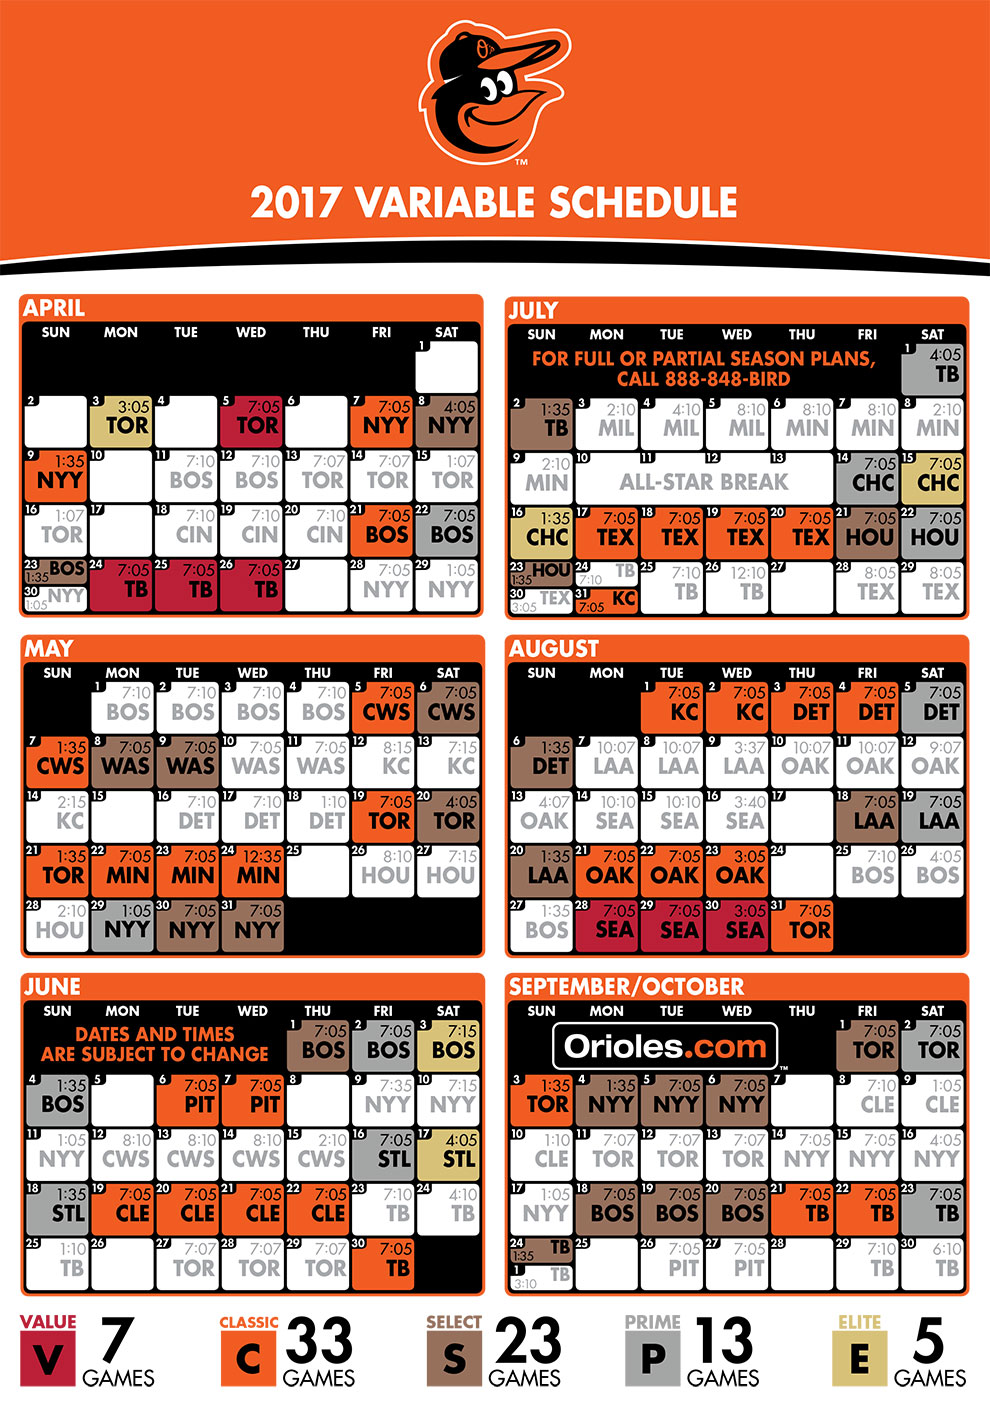 Orioles Variable Pricing Schedule